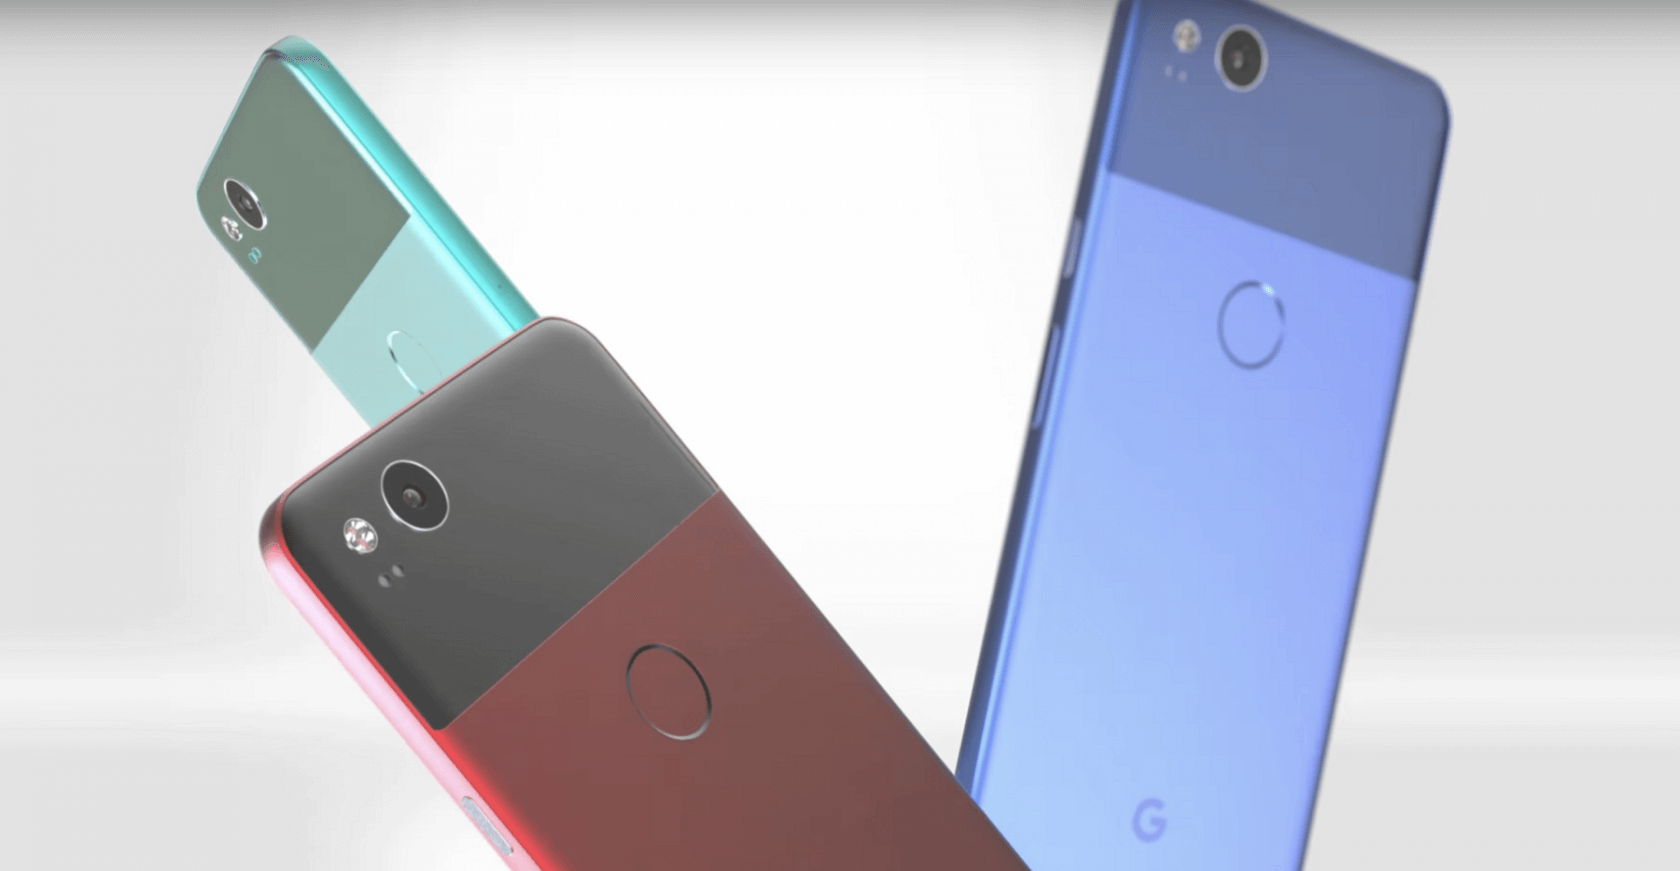 Pixel 2 handsets rumored to be unveiled on October 5, will feature Snapdragon 836 chipset